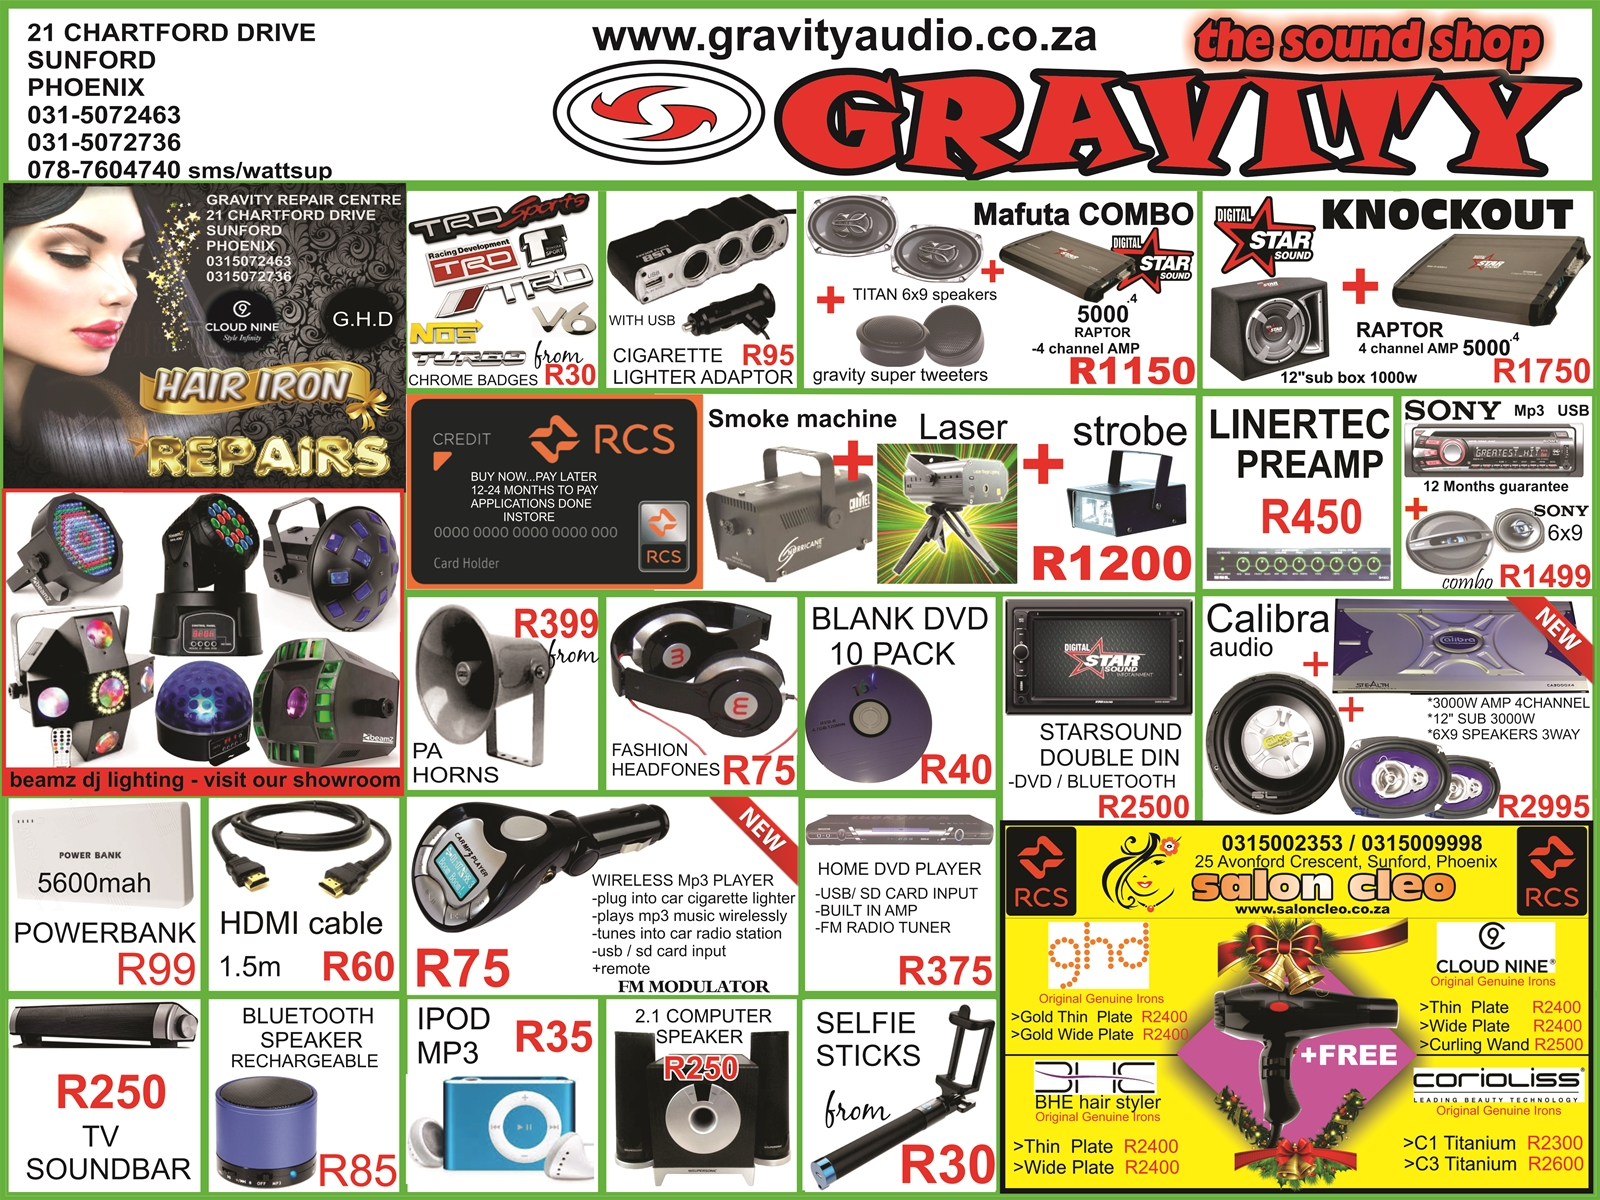 gravity audio dj store sound pioneer starsound clearance sale at gravity sound and lighting store 0315072736